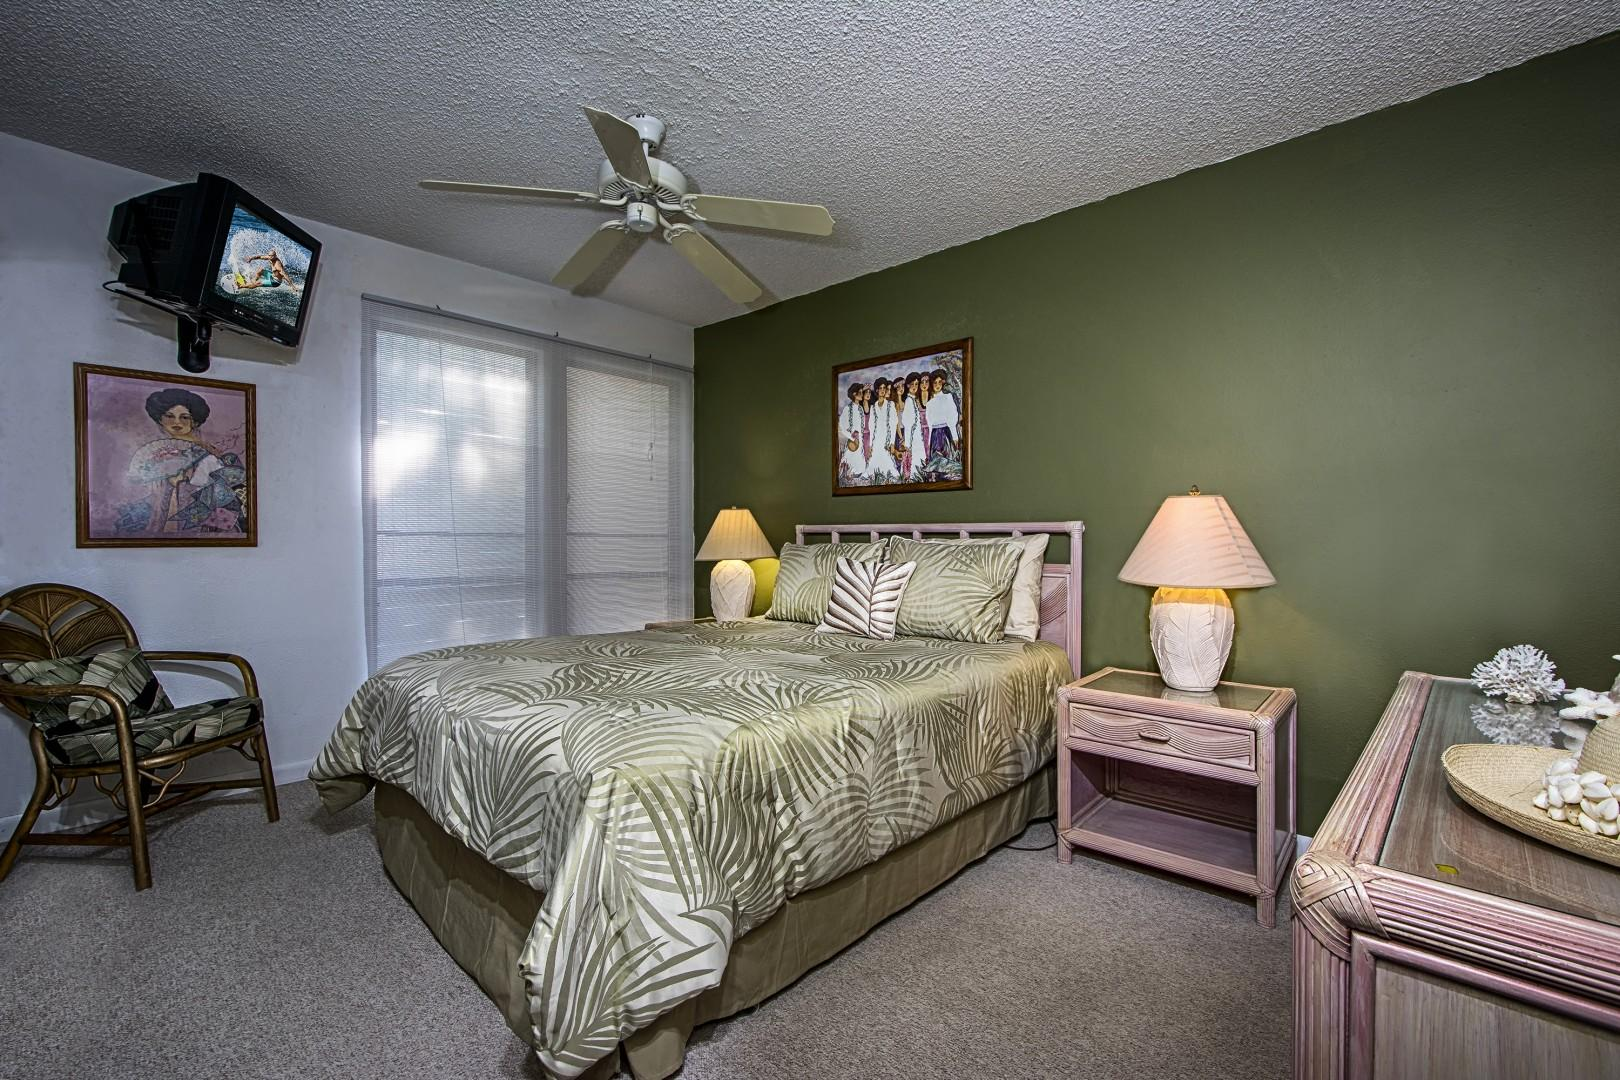 Master bedroom, equipped with a Queen bed and TV